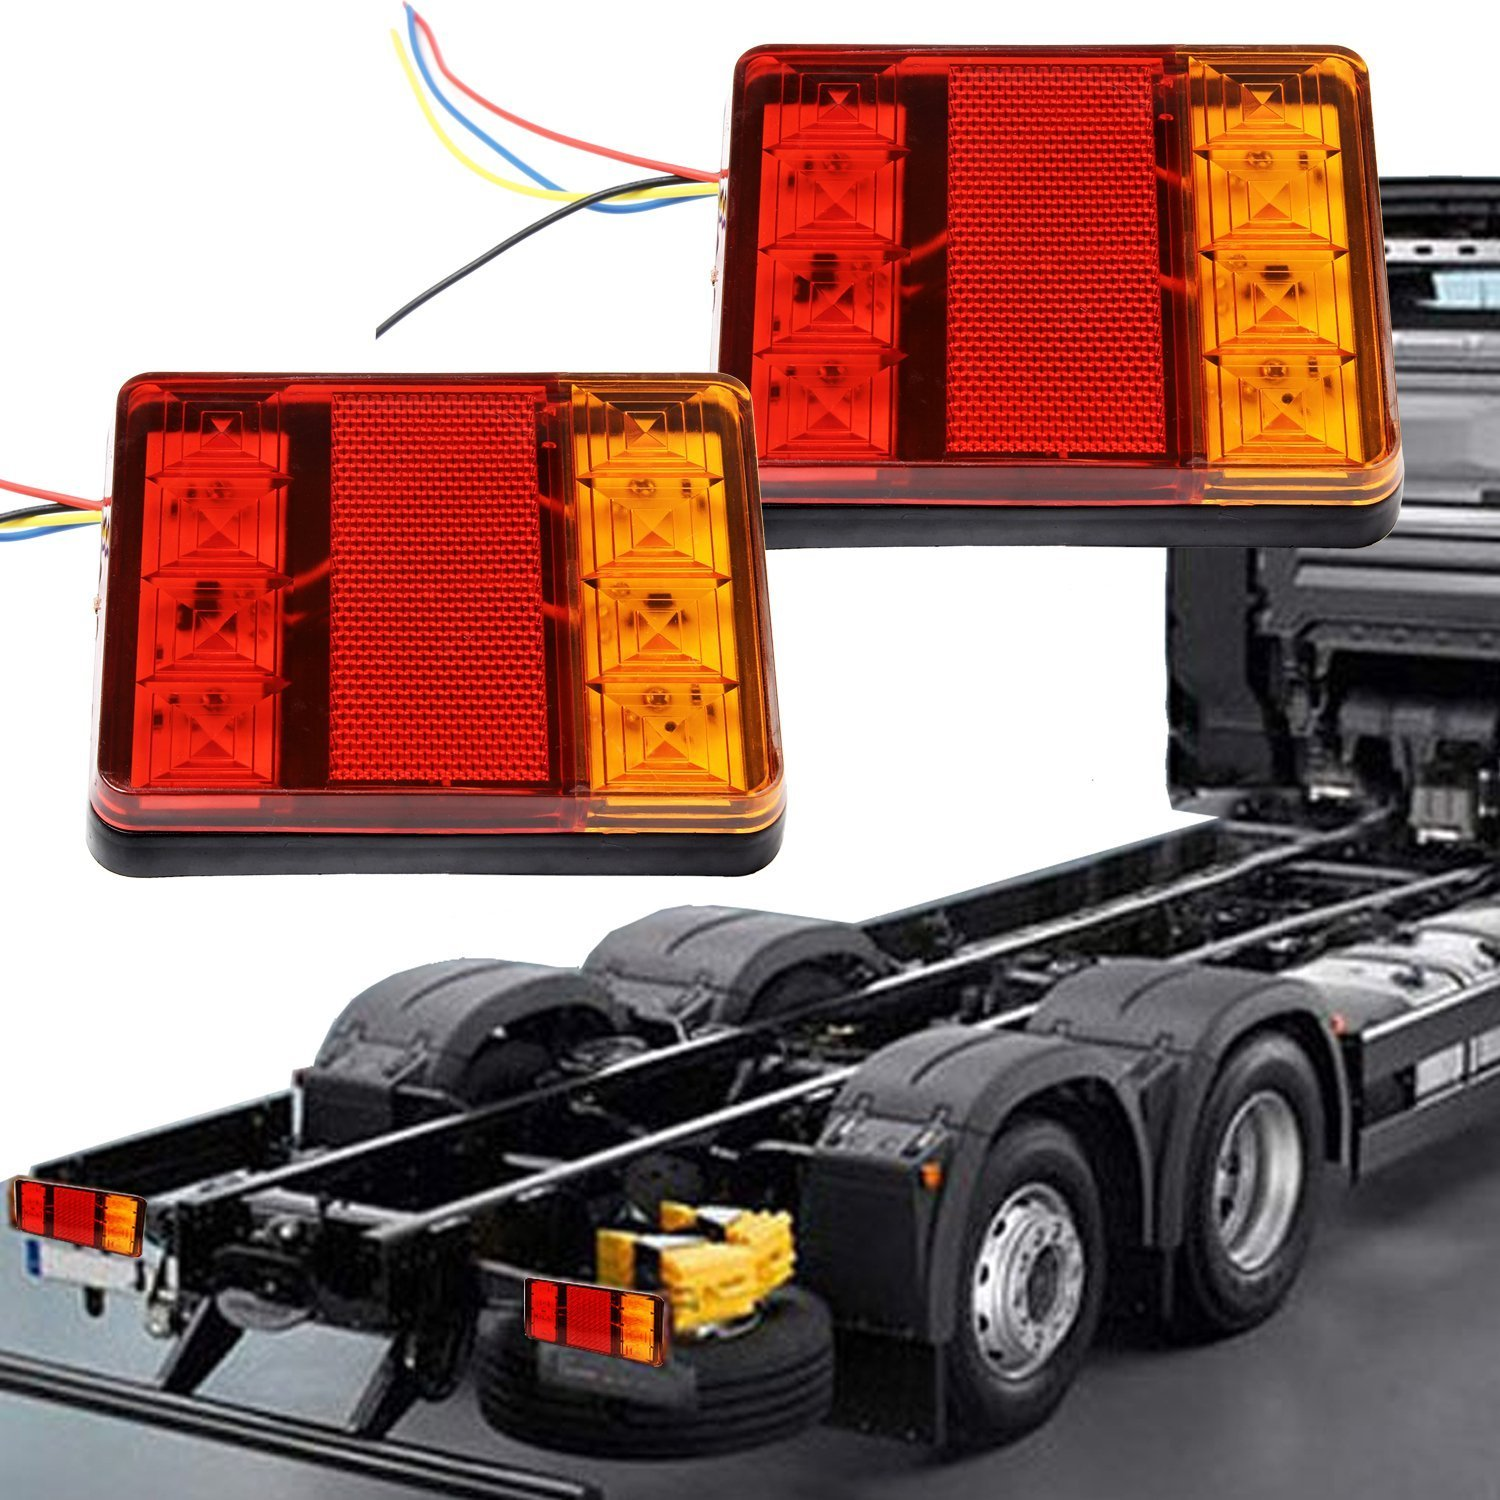 Cheap led tail lights trailer find led tail lights trailer deals on get quotations trailer truck tail lights discoball 2pc square led trailer light kit rear led brake aloadofball Image collections